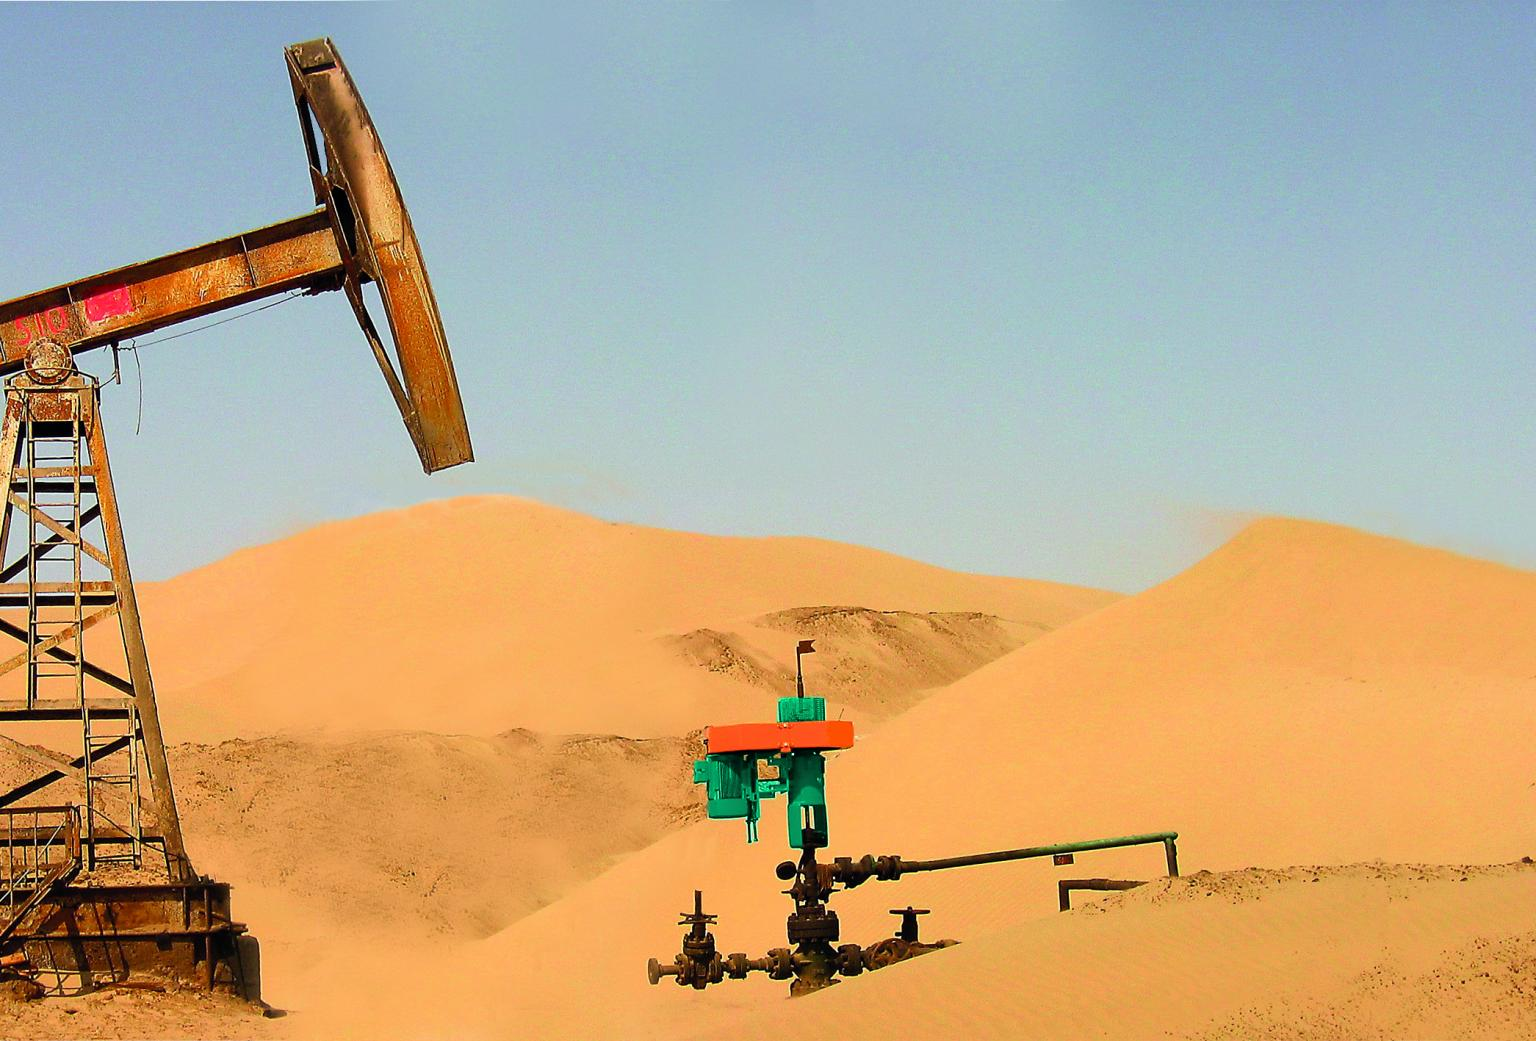 Netzsch is prepared for all media in the oil & gas industry